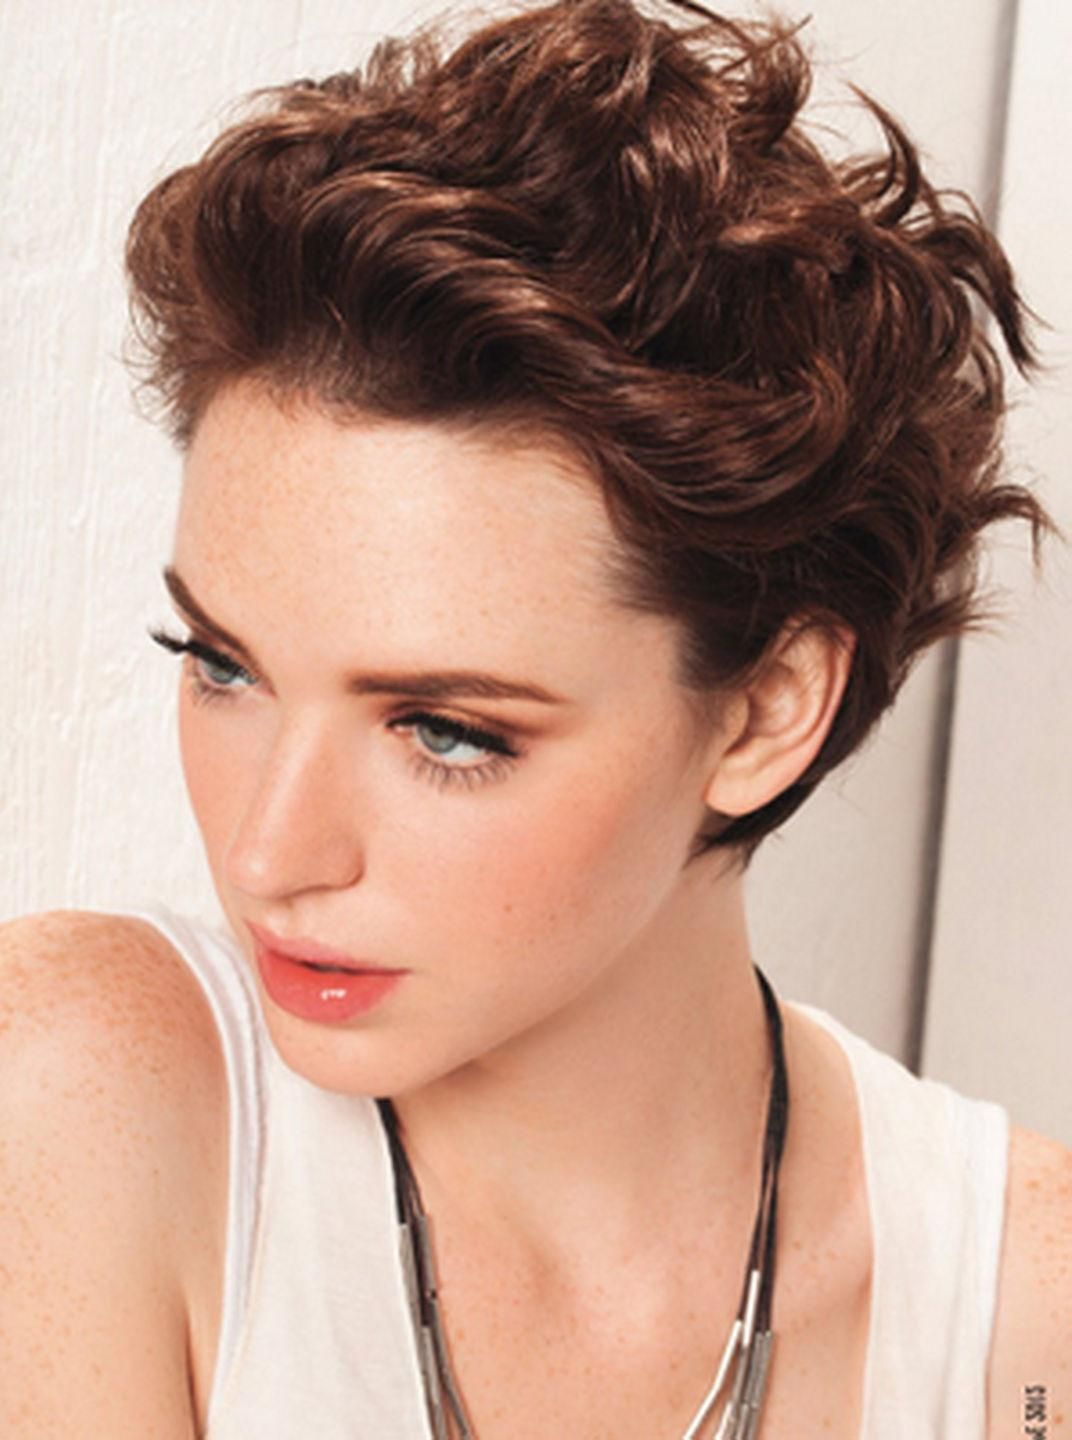 short hairstyles for thick curly frizzy hair men and woman | short